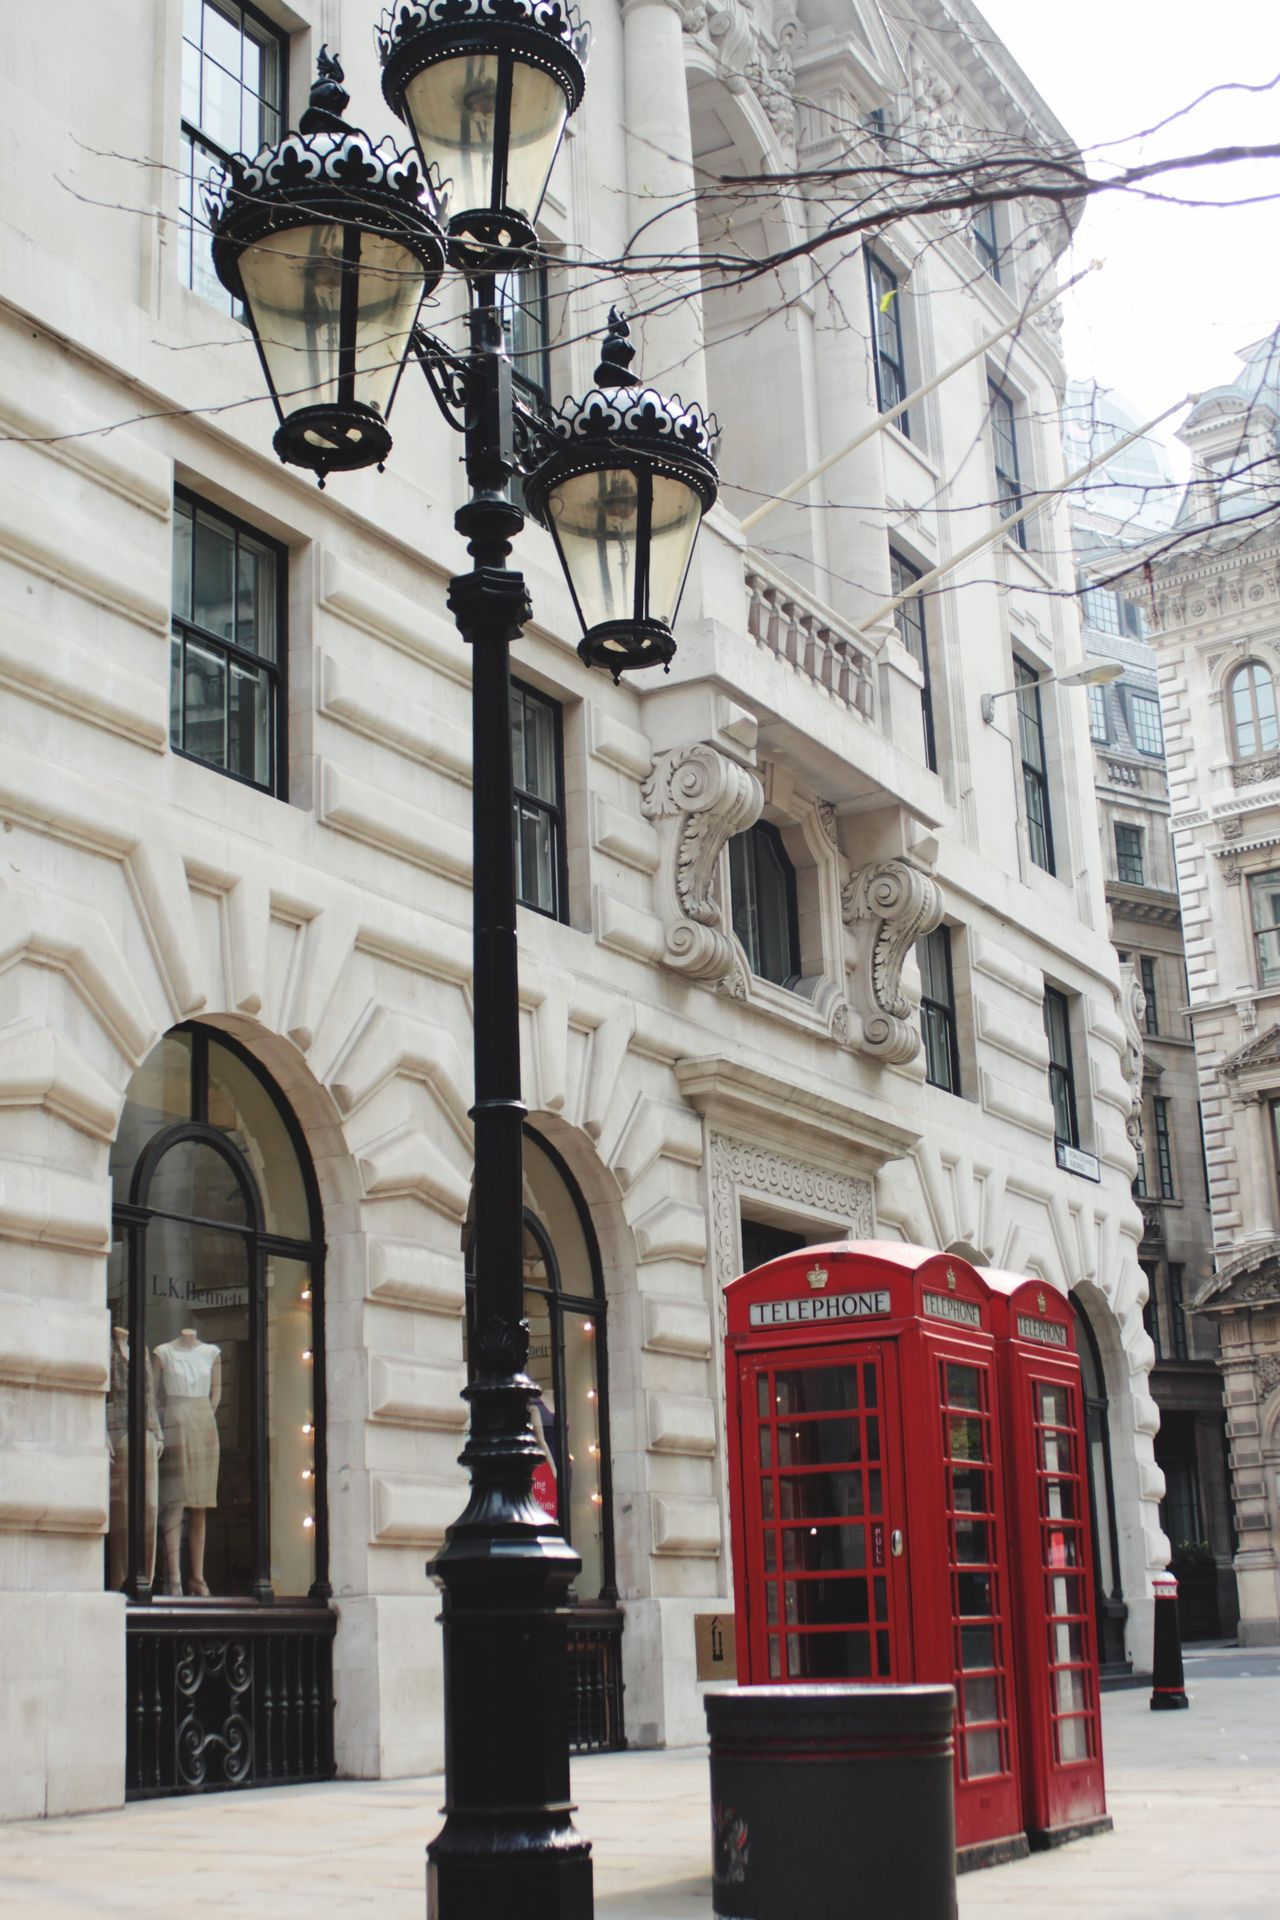 Building Exterior Architecture Outdoors London Red Phone Boxes Red Lamp Black And White With A Splash Of Colour Streetphoto_color City Outdoor Photography From Where I Stand Built Structure Buildings